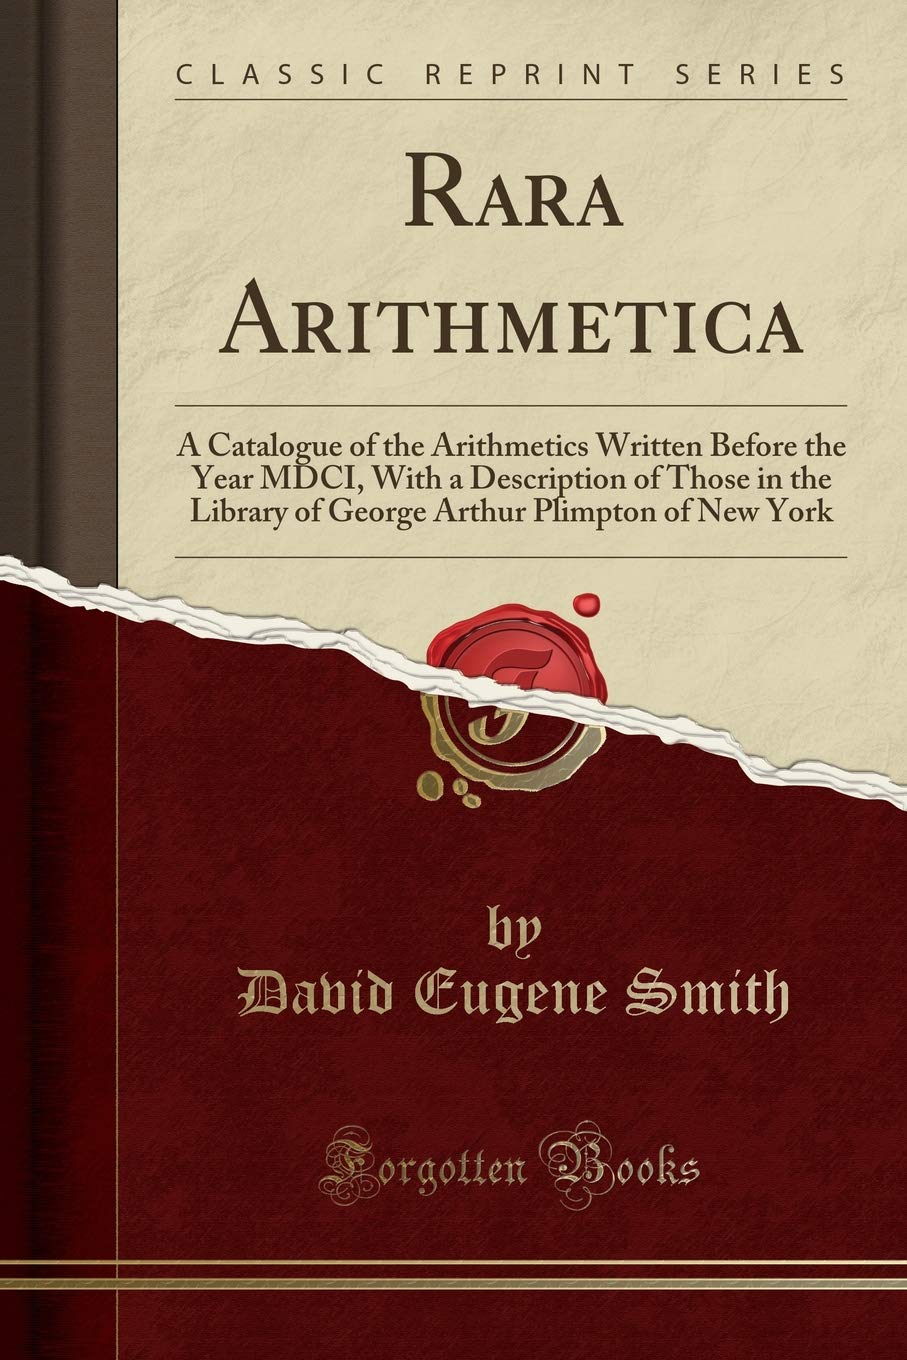 Download Rara Arithmetica: A Catalogve of the Arithmetics Written Before the Year MDCI With a Description of Those in the Library of George Arthvr Plimpton of New York (Classic Reprint) pdf epub